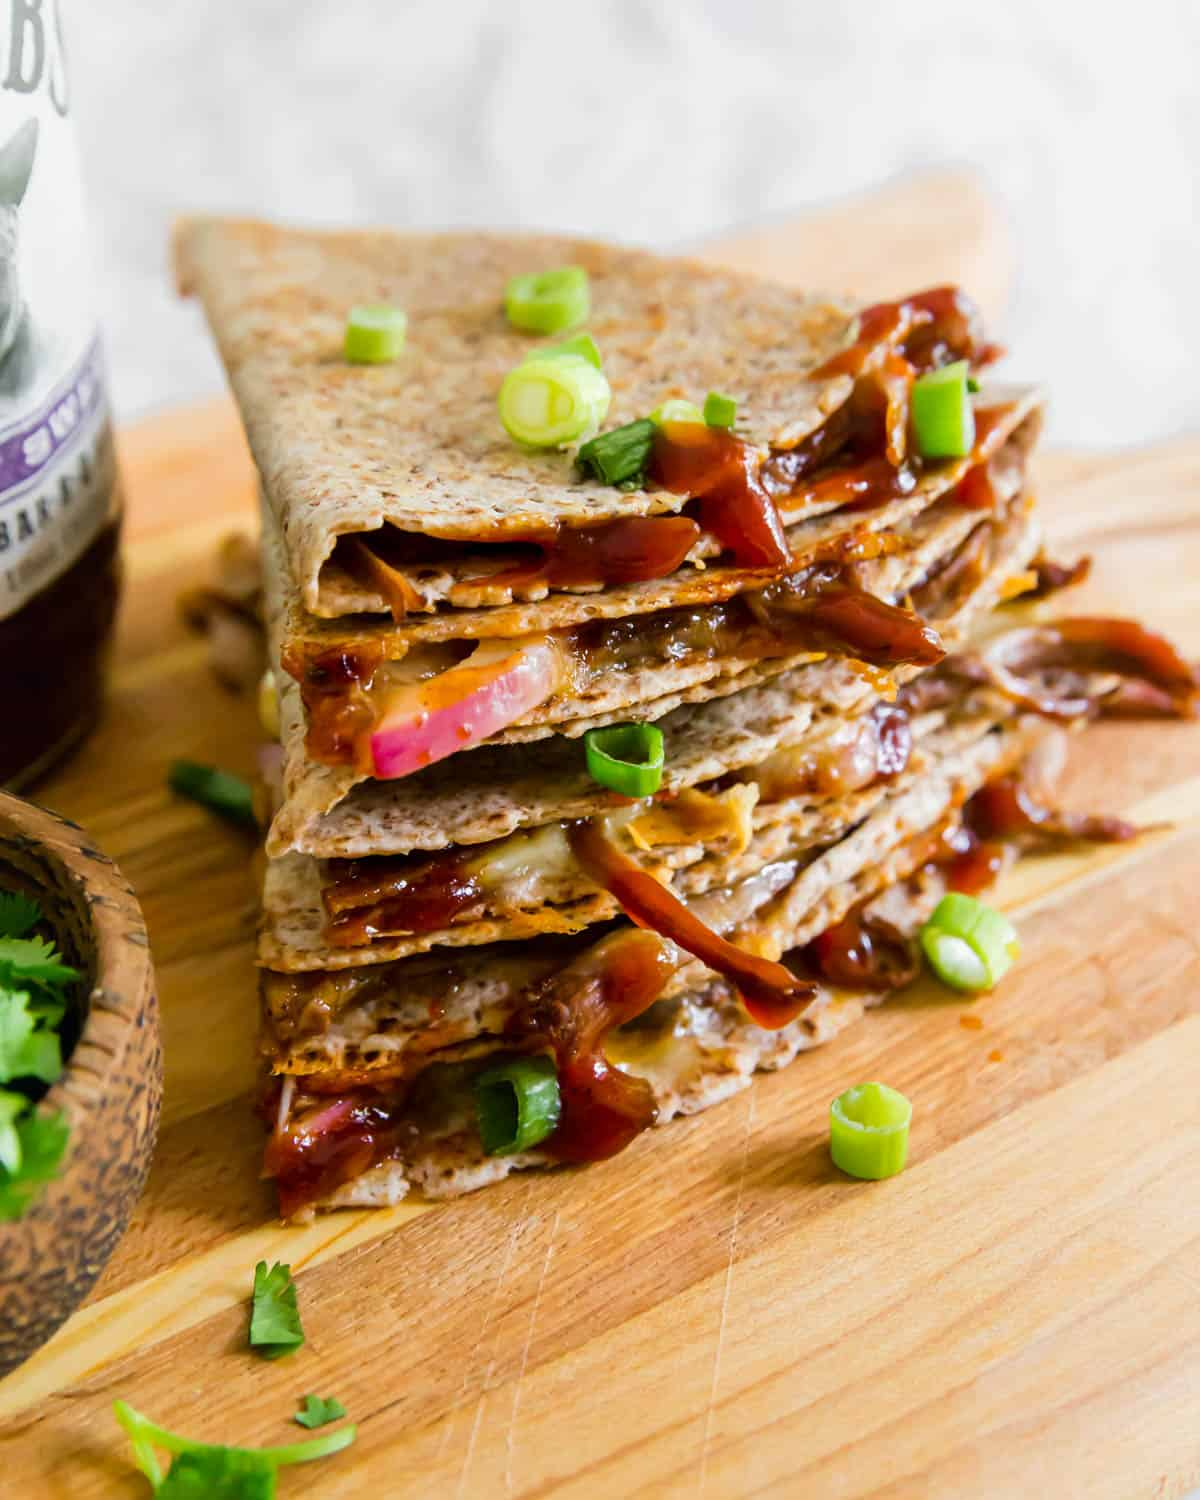 This brisket quesadilla with BBQ sauce and cheddar cheese is a quick and easy meal that's unbelievably delicious.